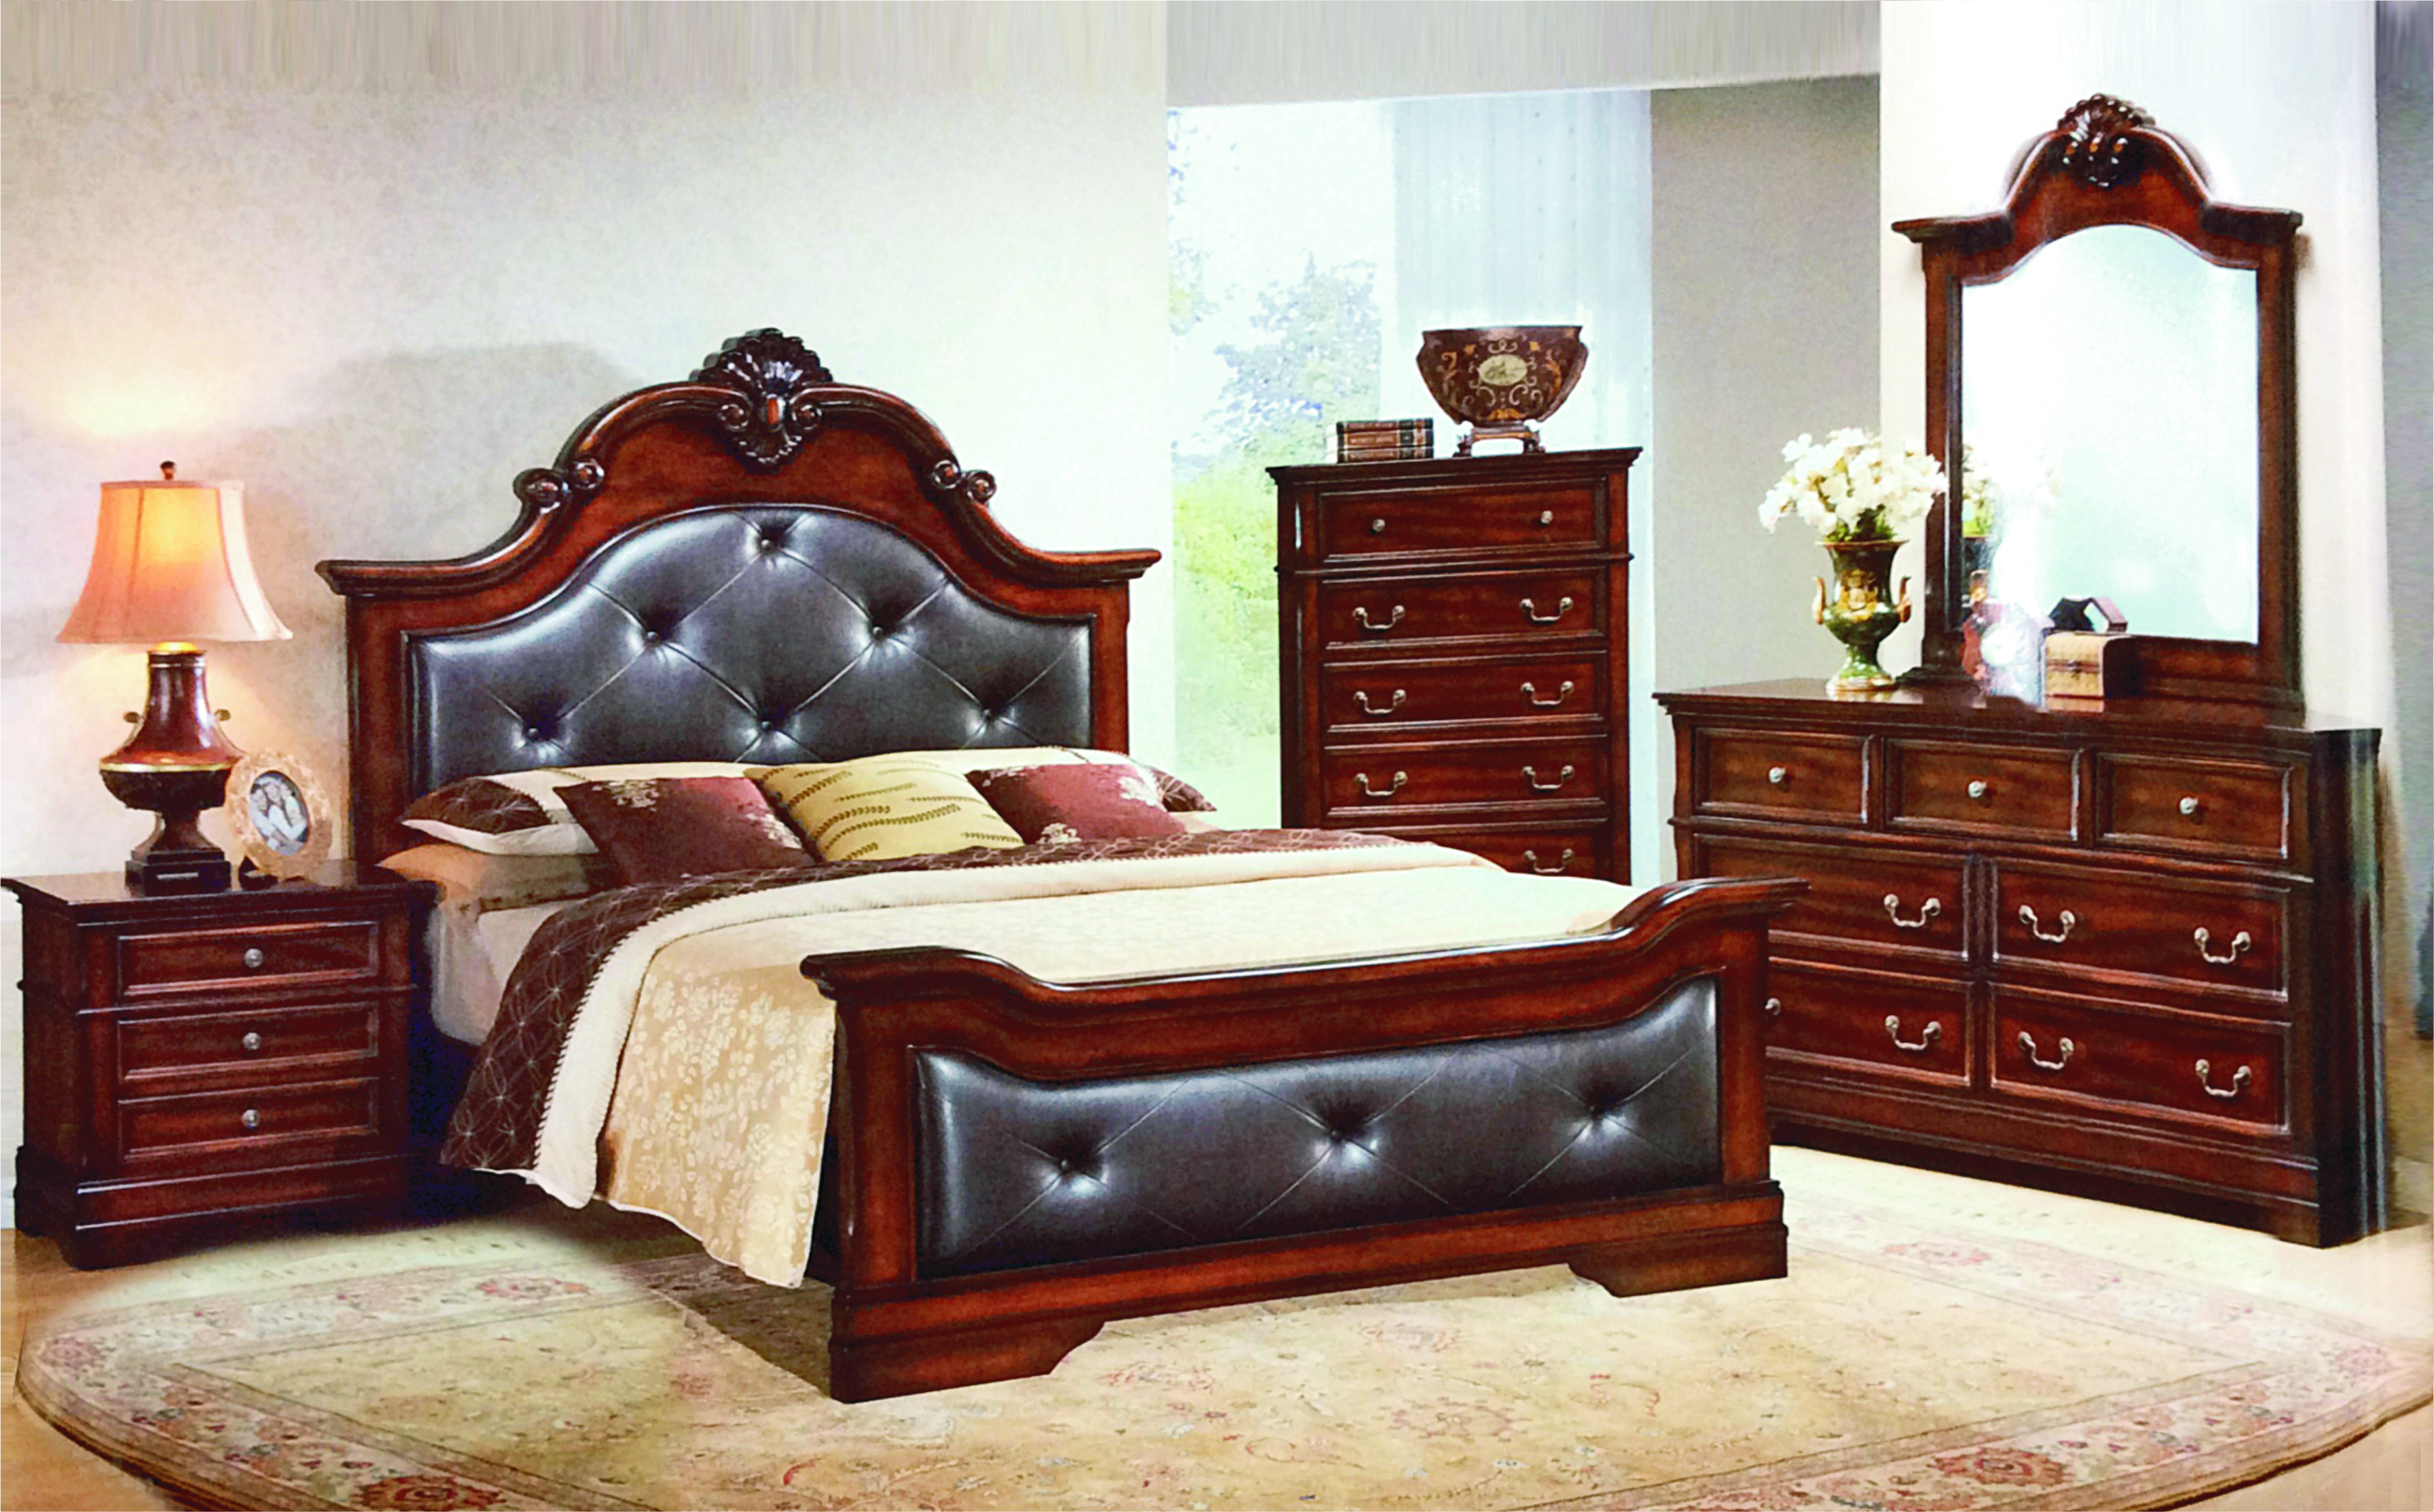 Trend Bedroom Sets With Drawers Under Bed Design Ideas